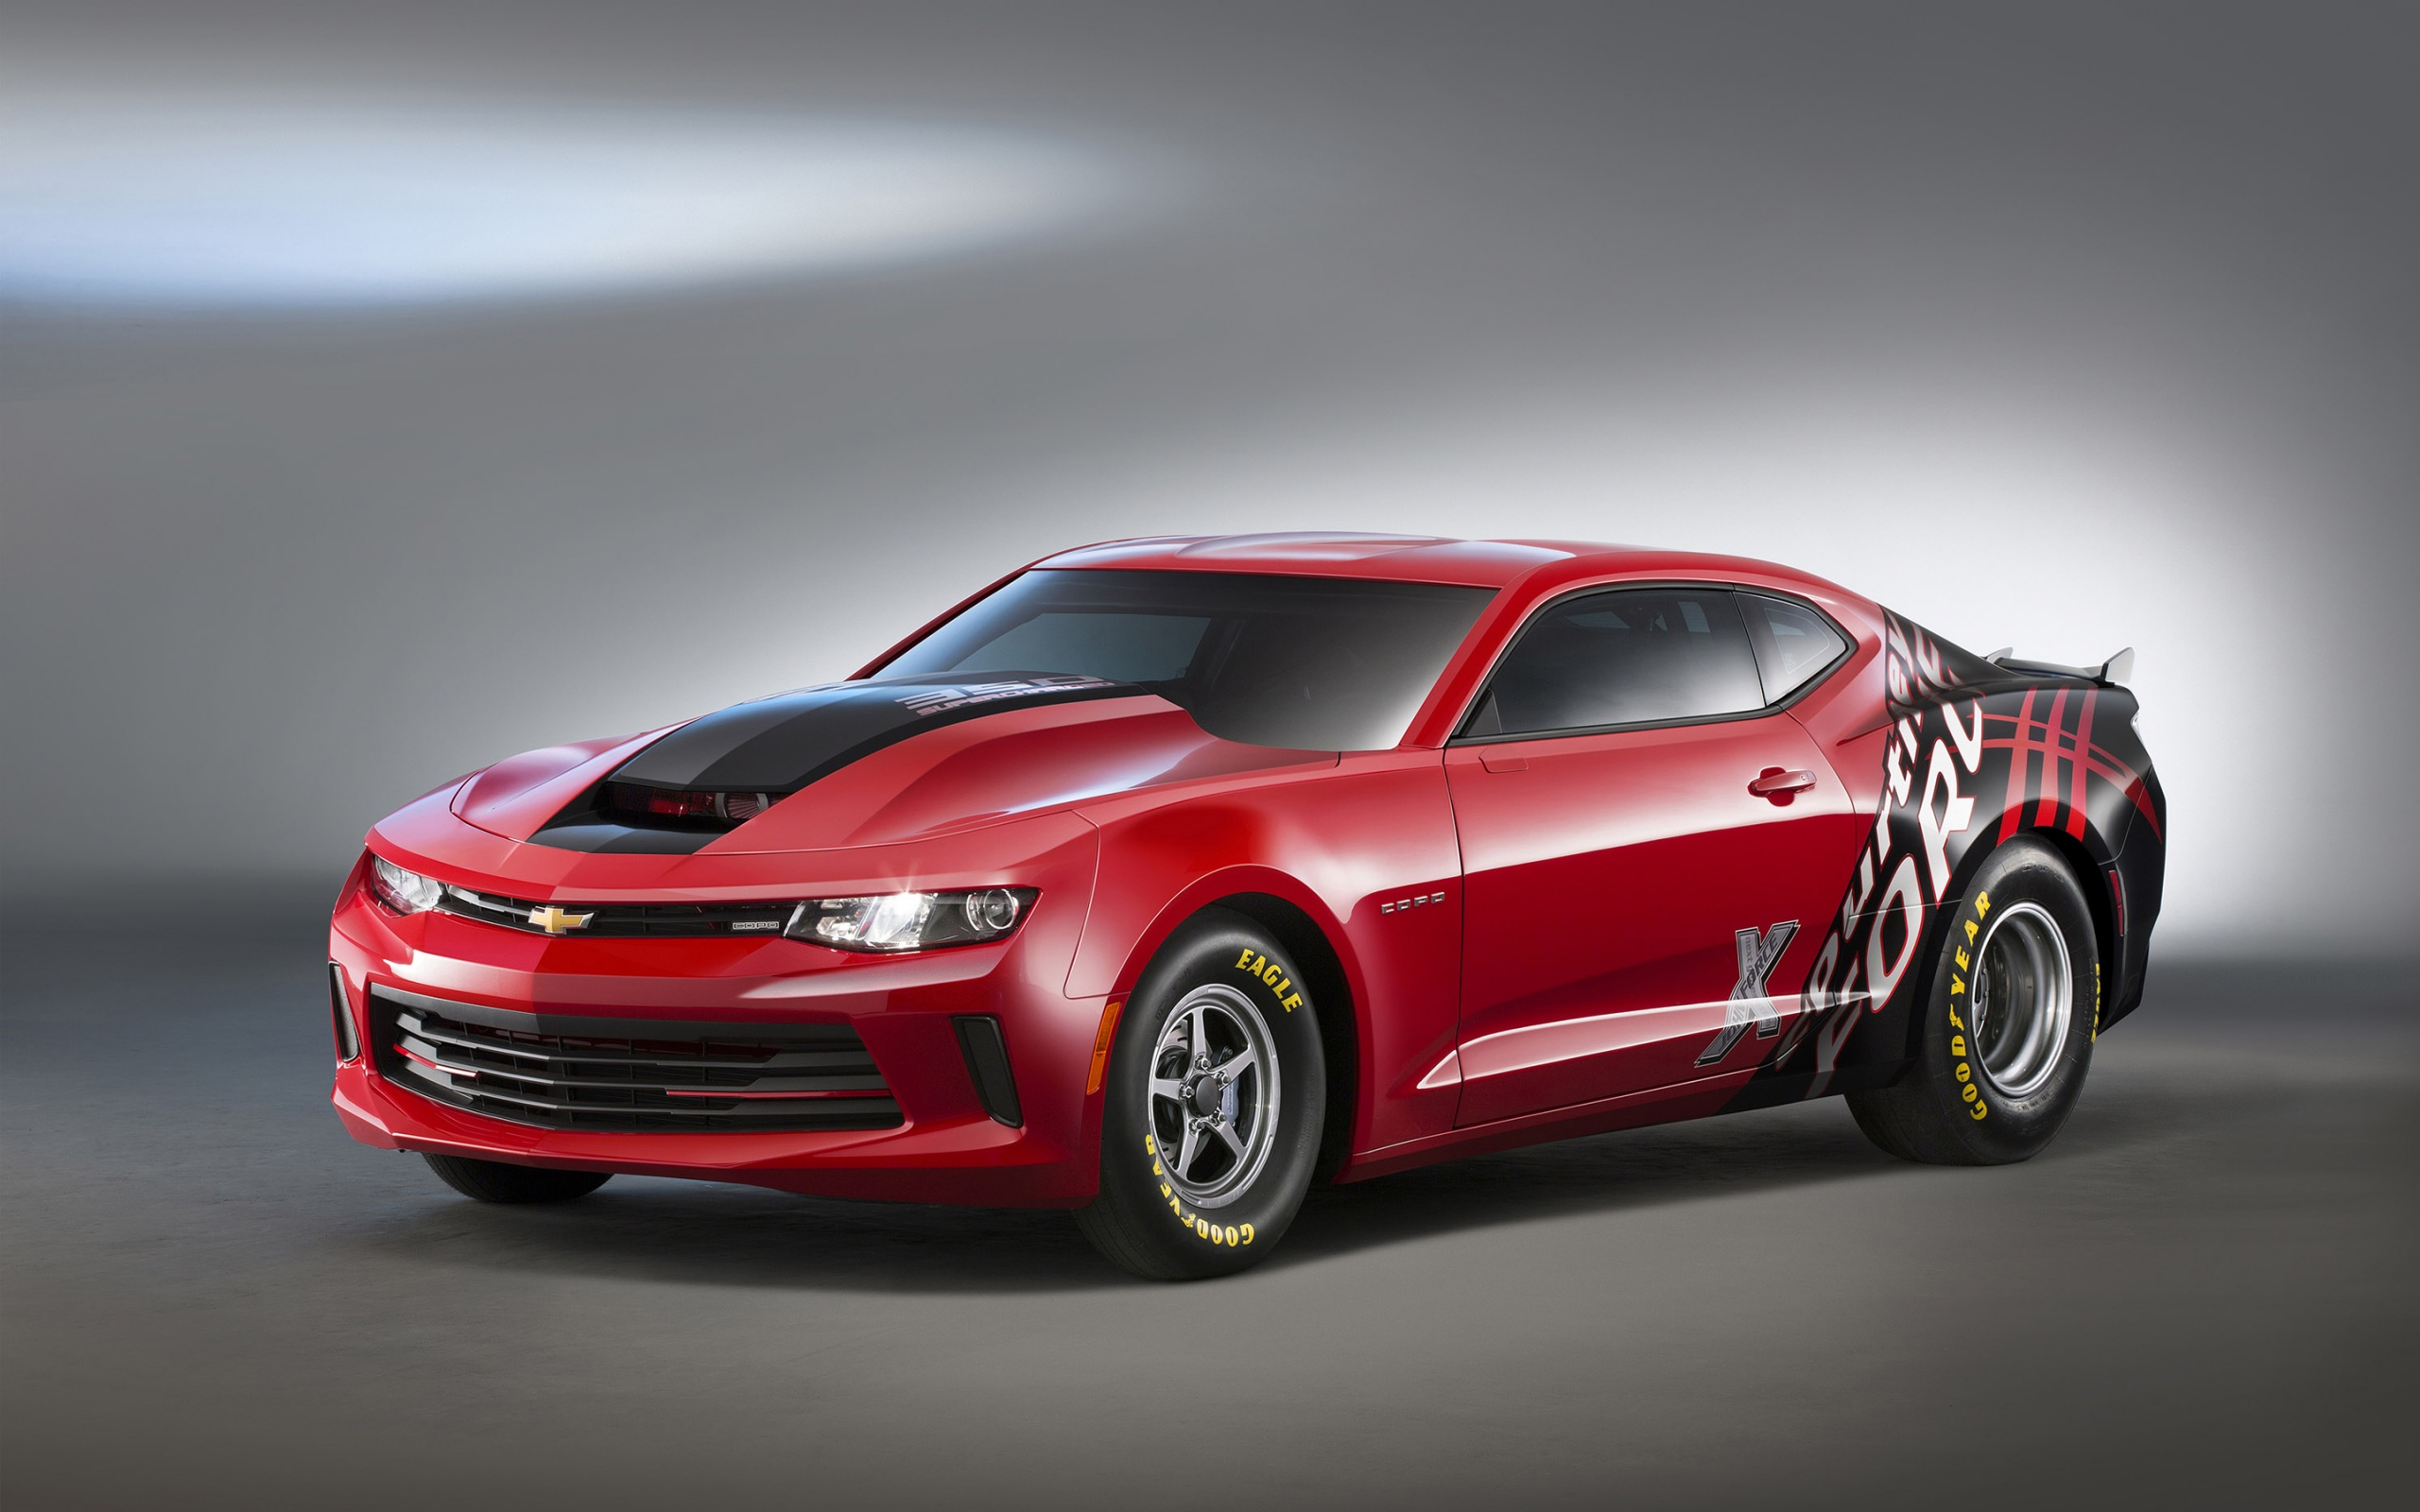 2016 Chevrolet Copo Camaro Wallpapers HD Wallpapers 2560x1600